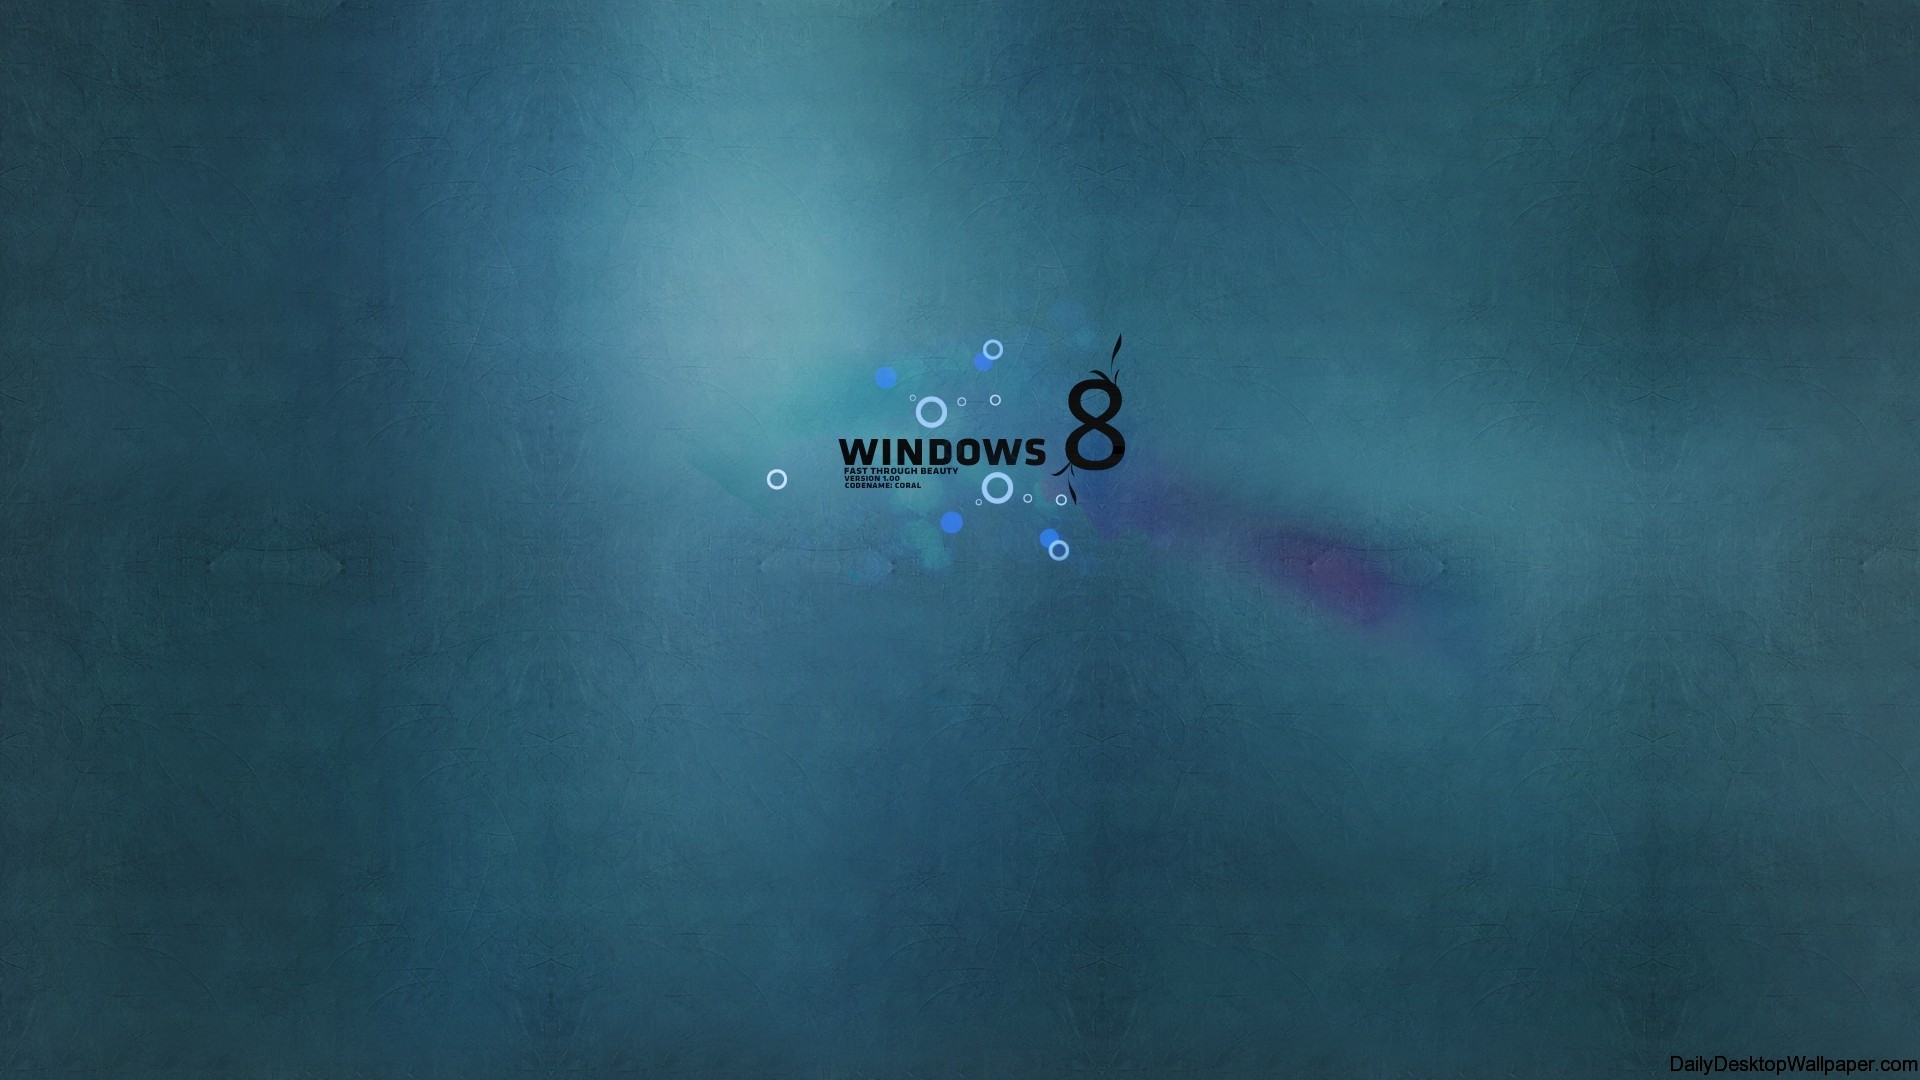 Windows 8 Logo Play